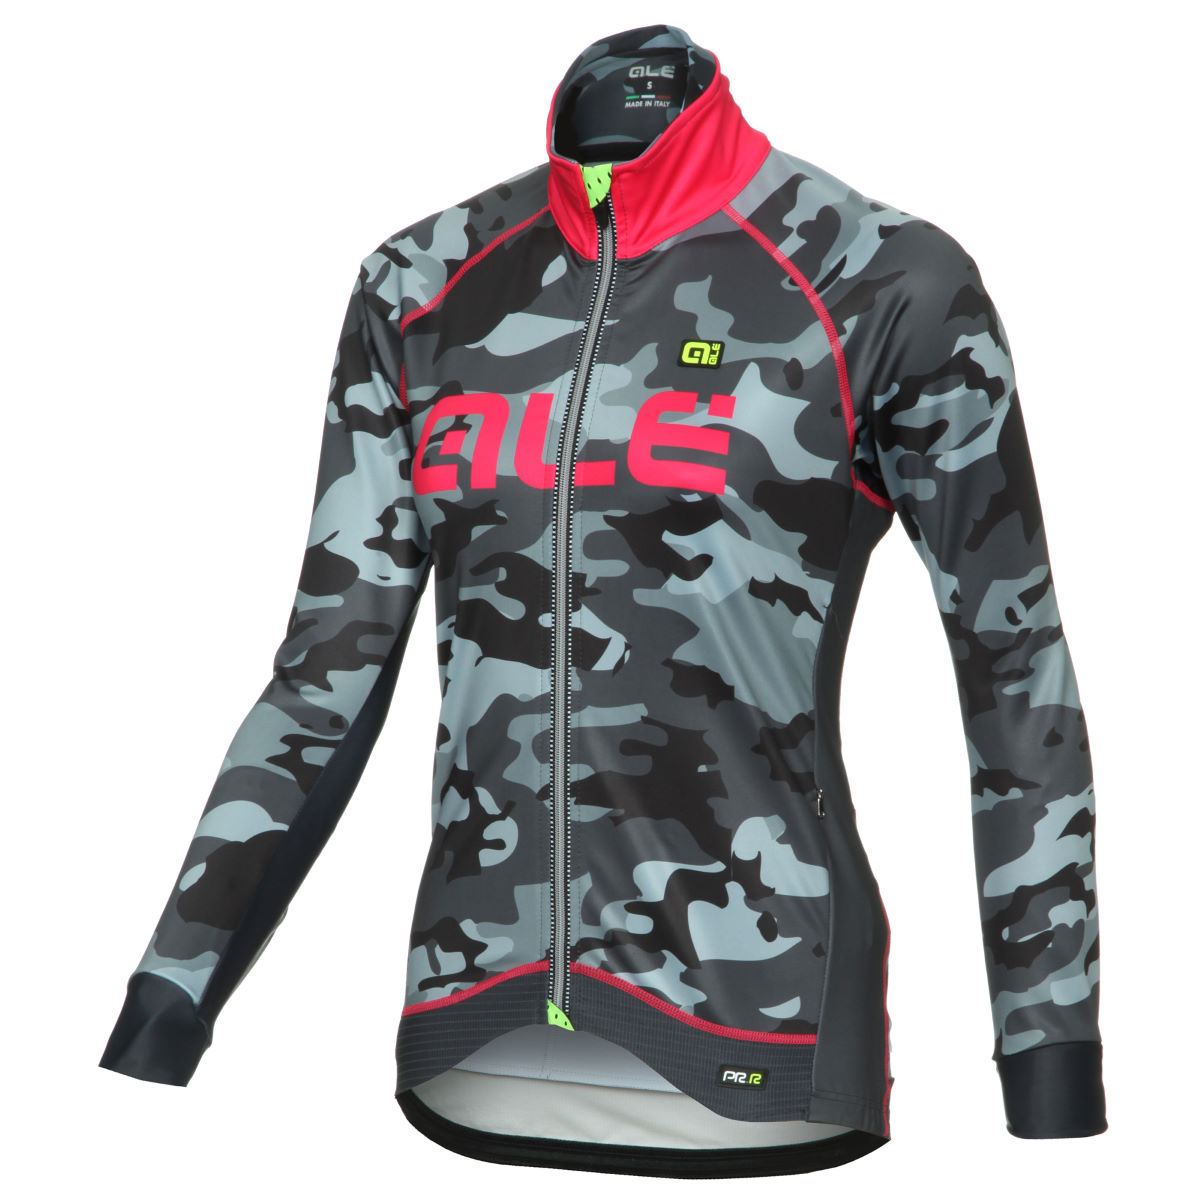 Veste Femme Alé PRR Camo (hiver) - XL Black/Strawberry Coupe-vents vélo